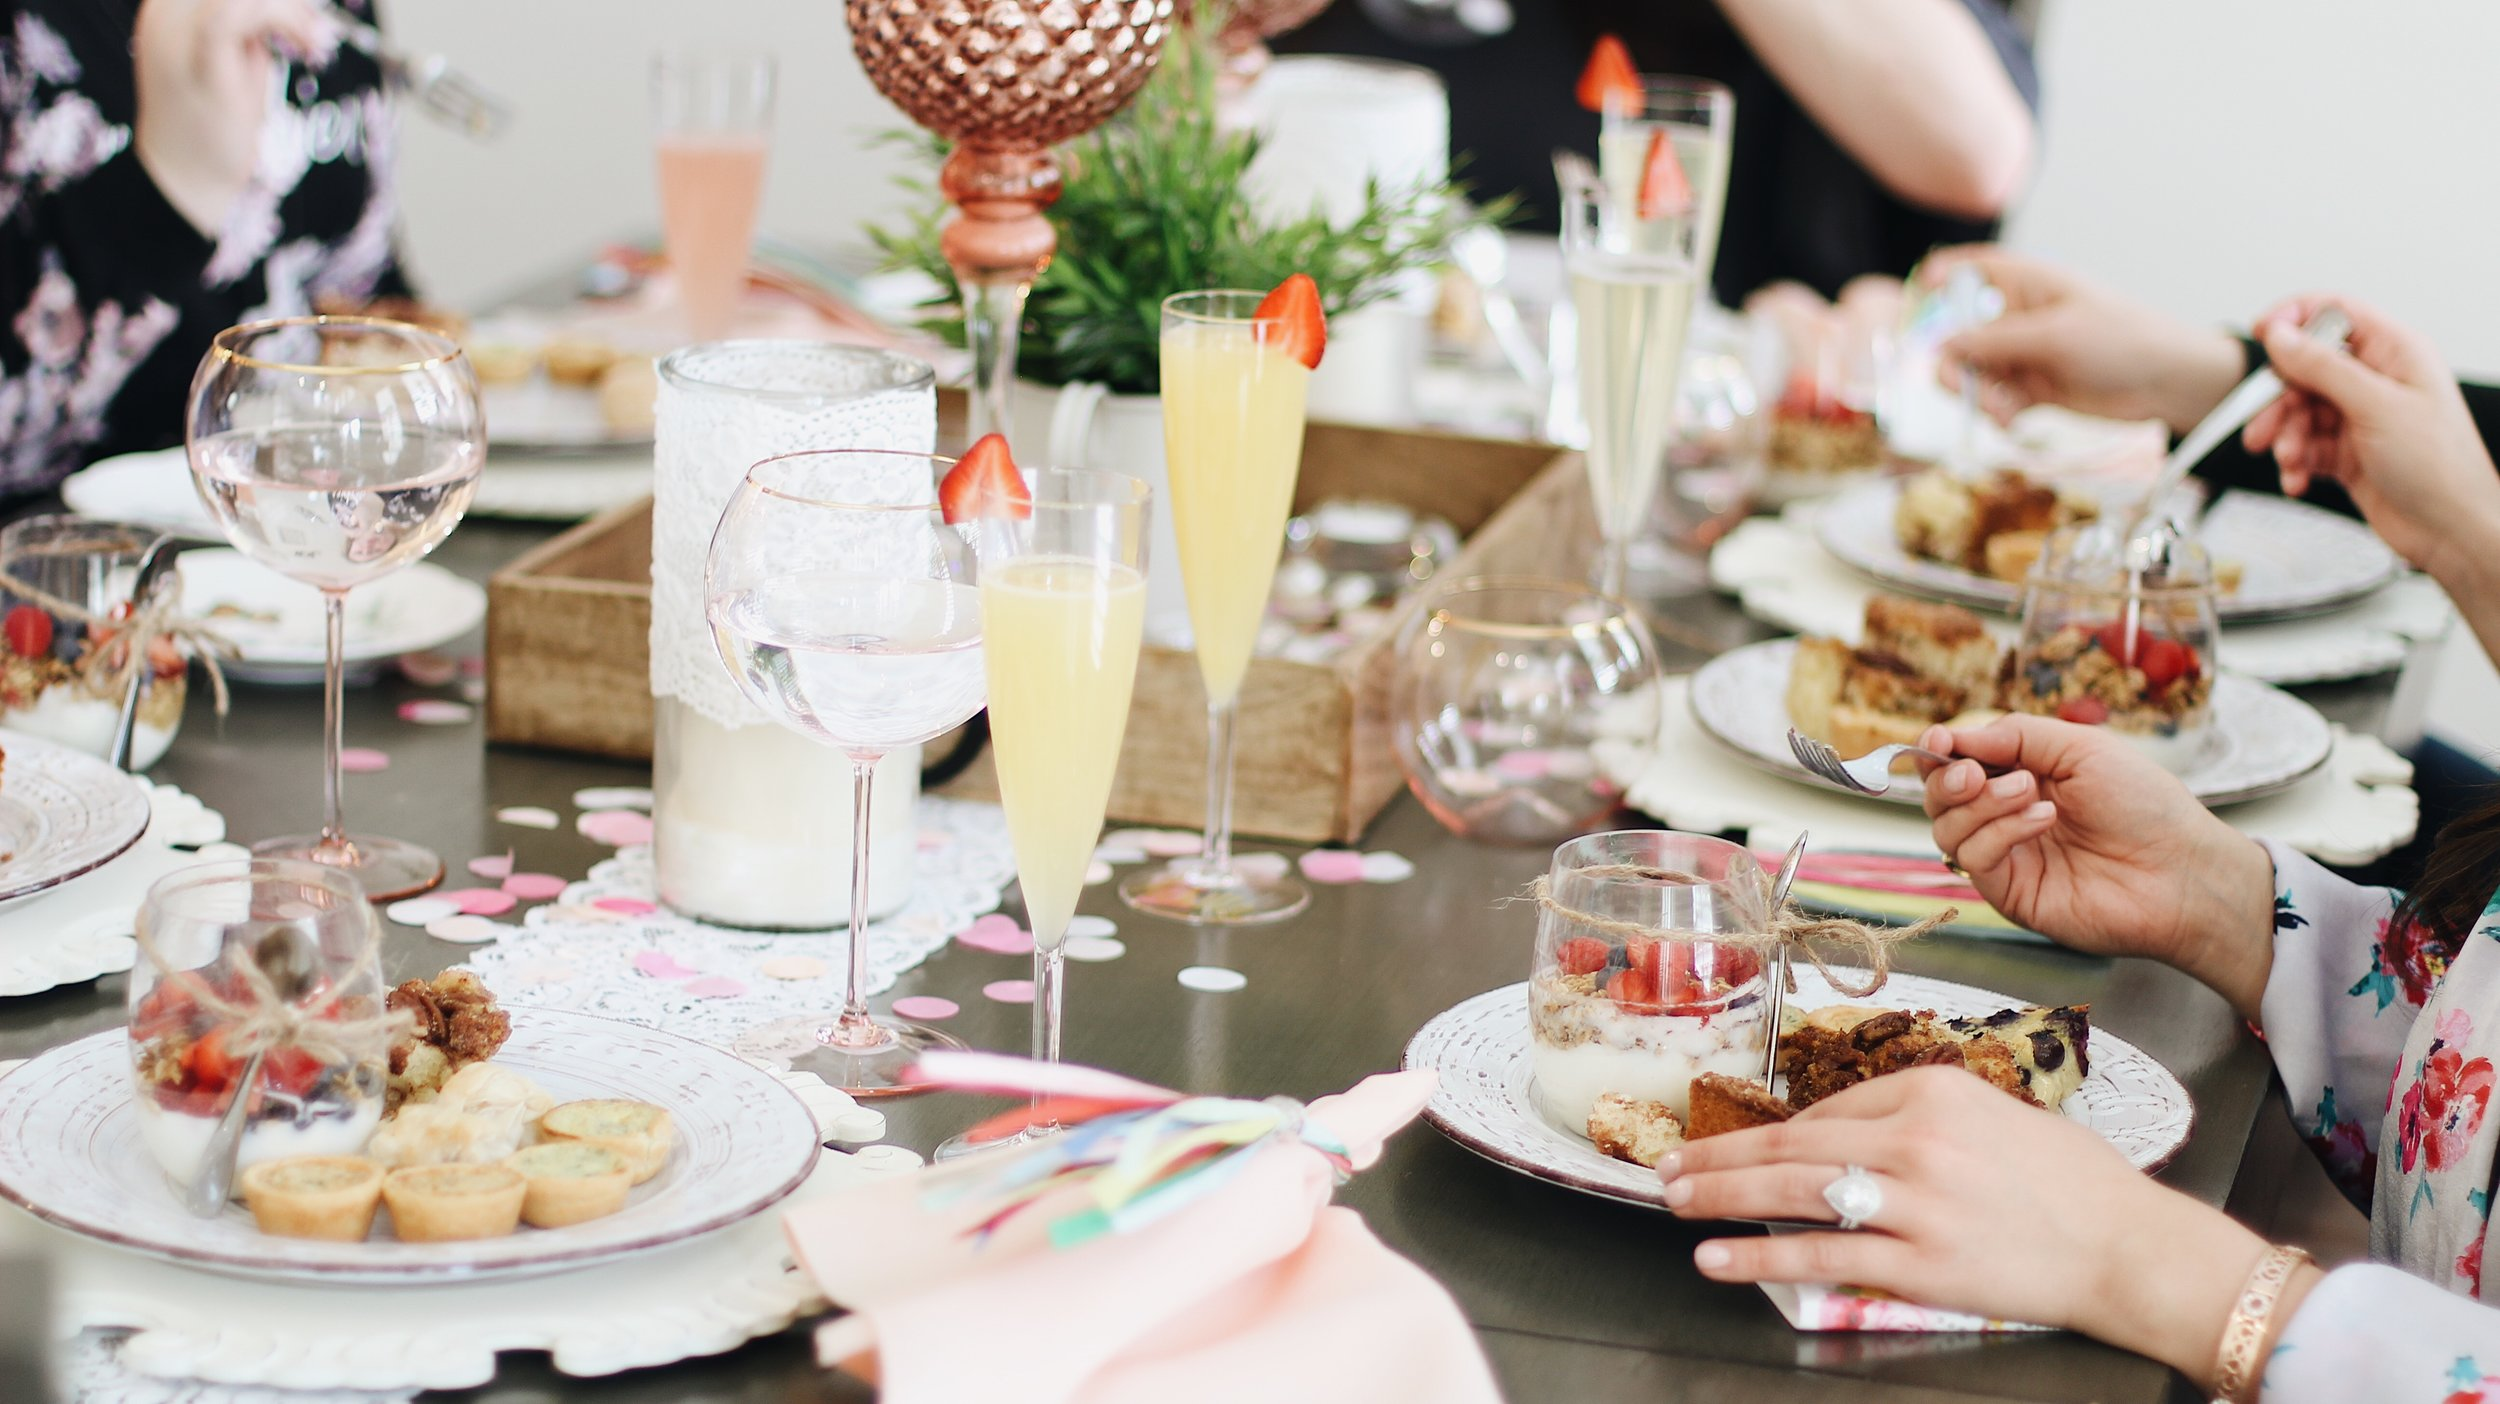 An intimate gathering with   Thoughtful details   what can we create for you?